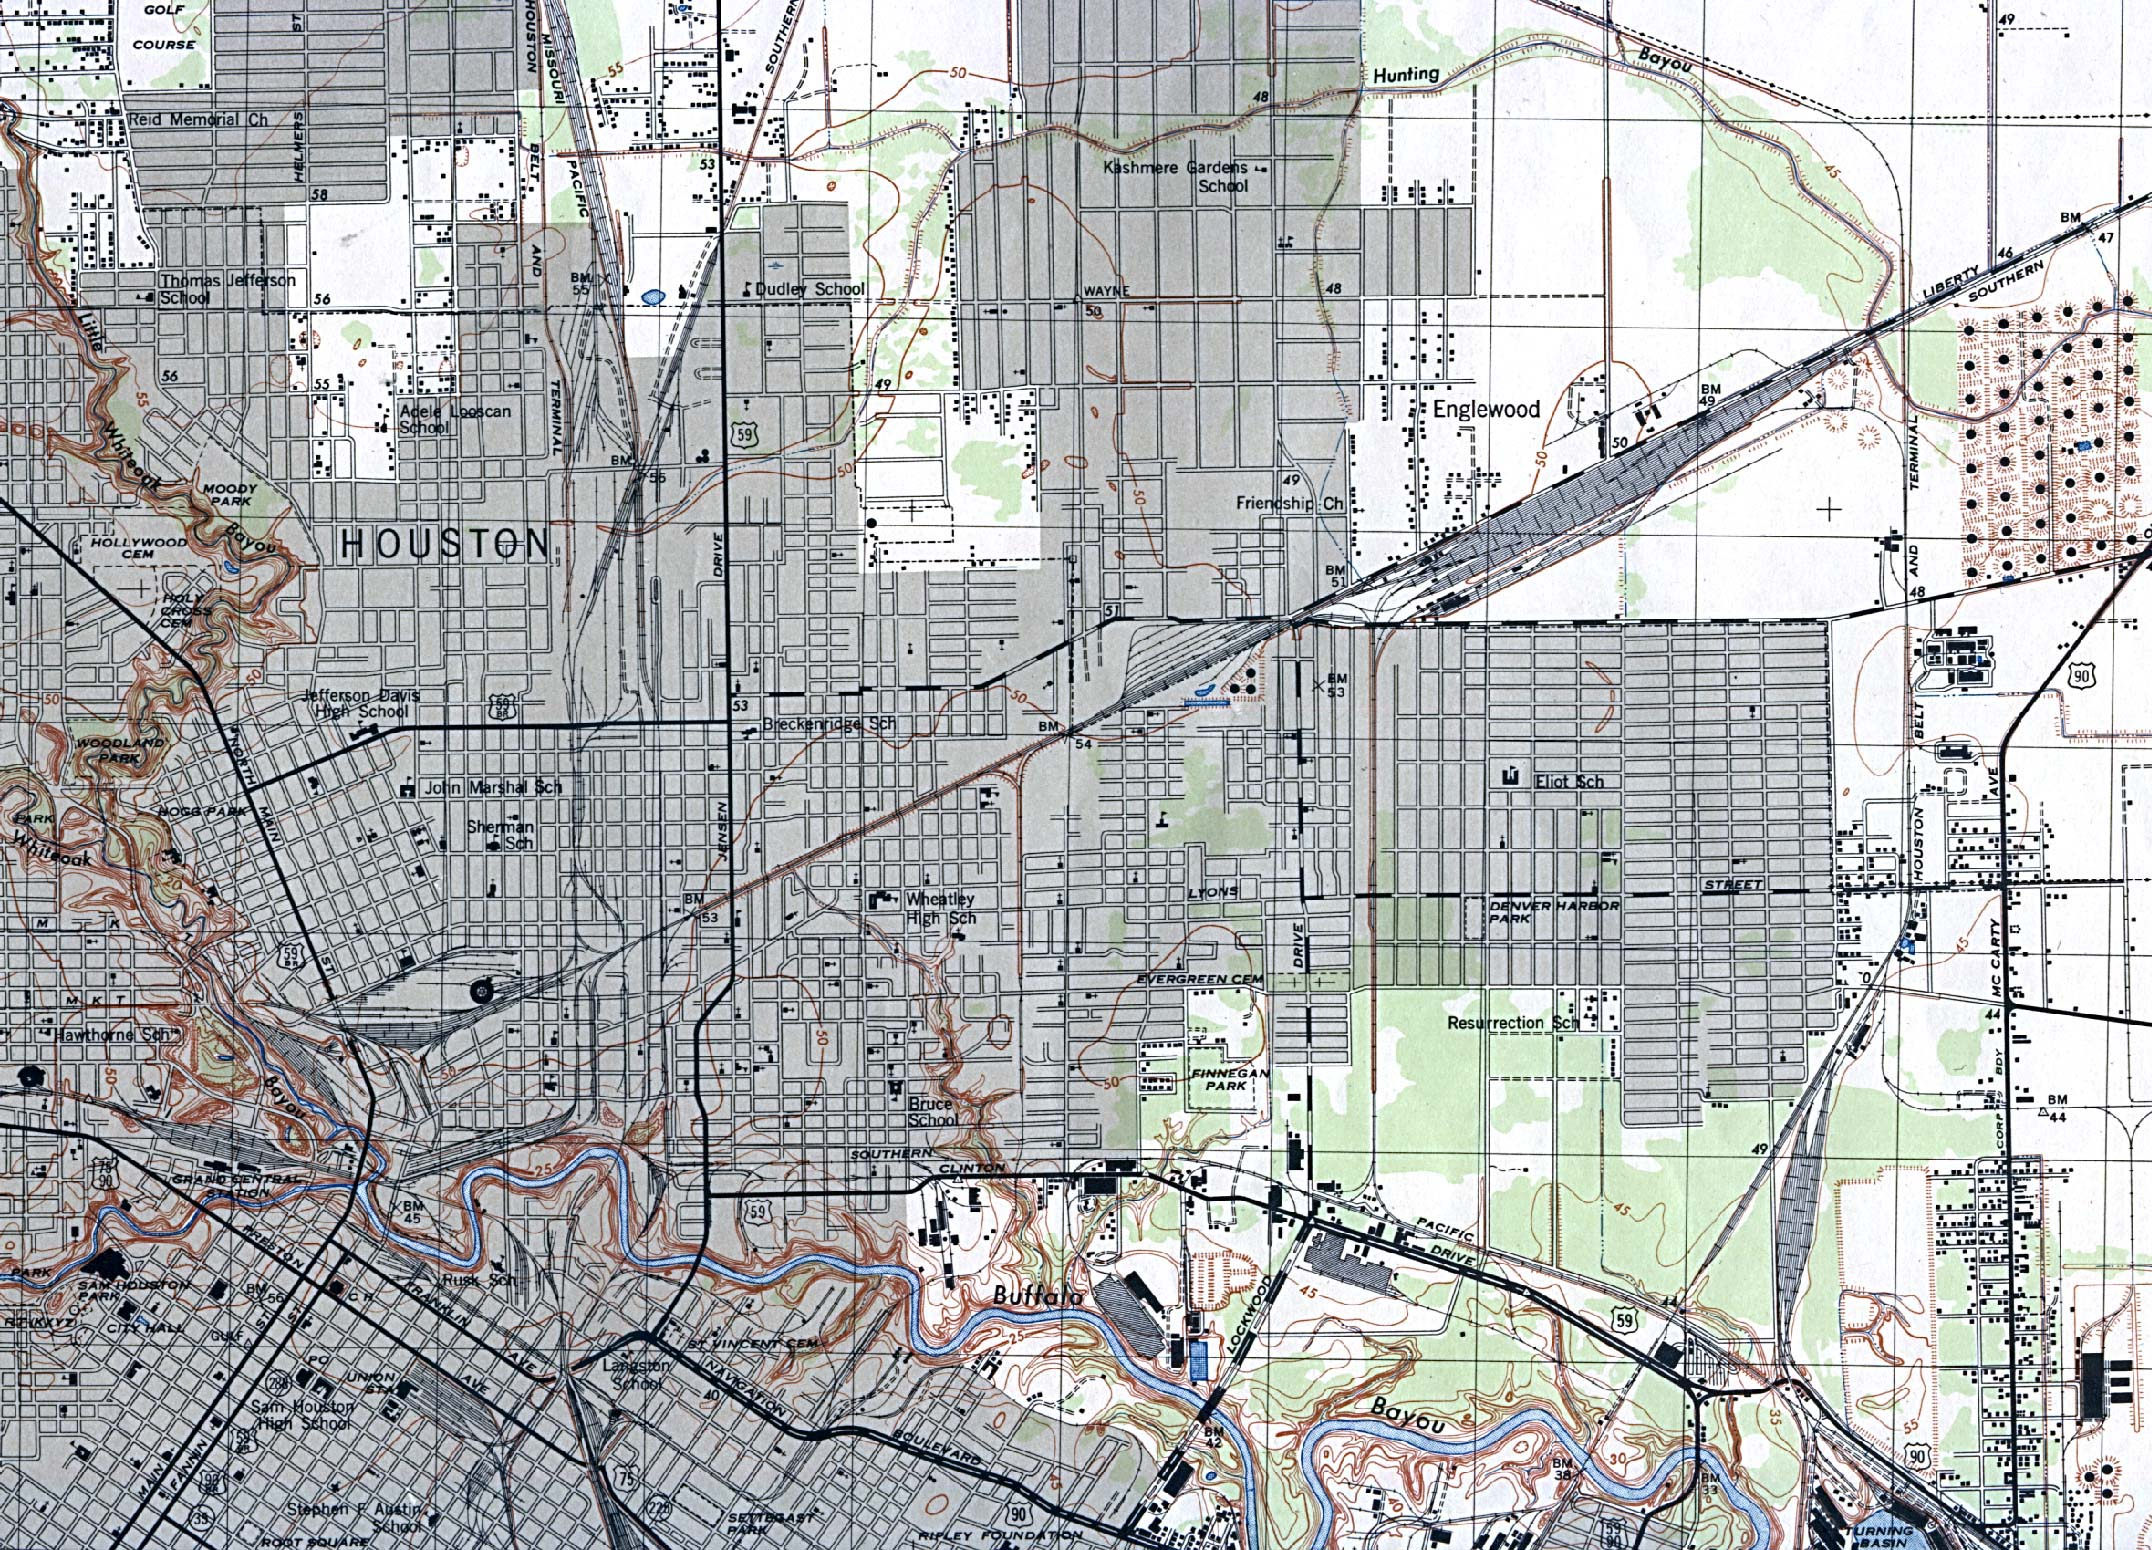 1946 u2013 Topographic map of Houston NE